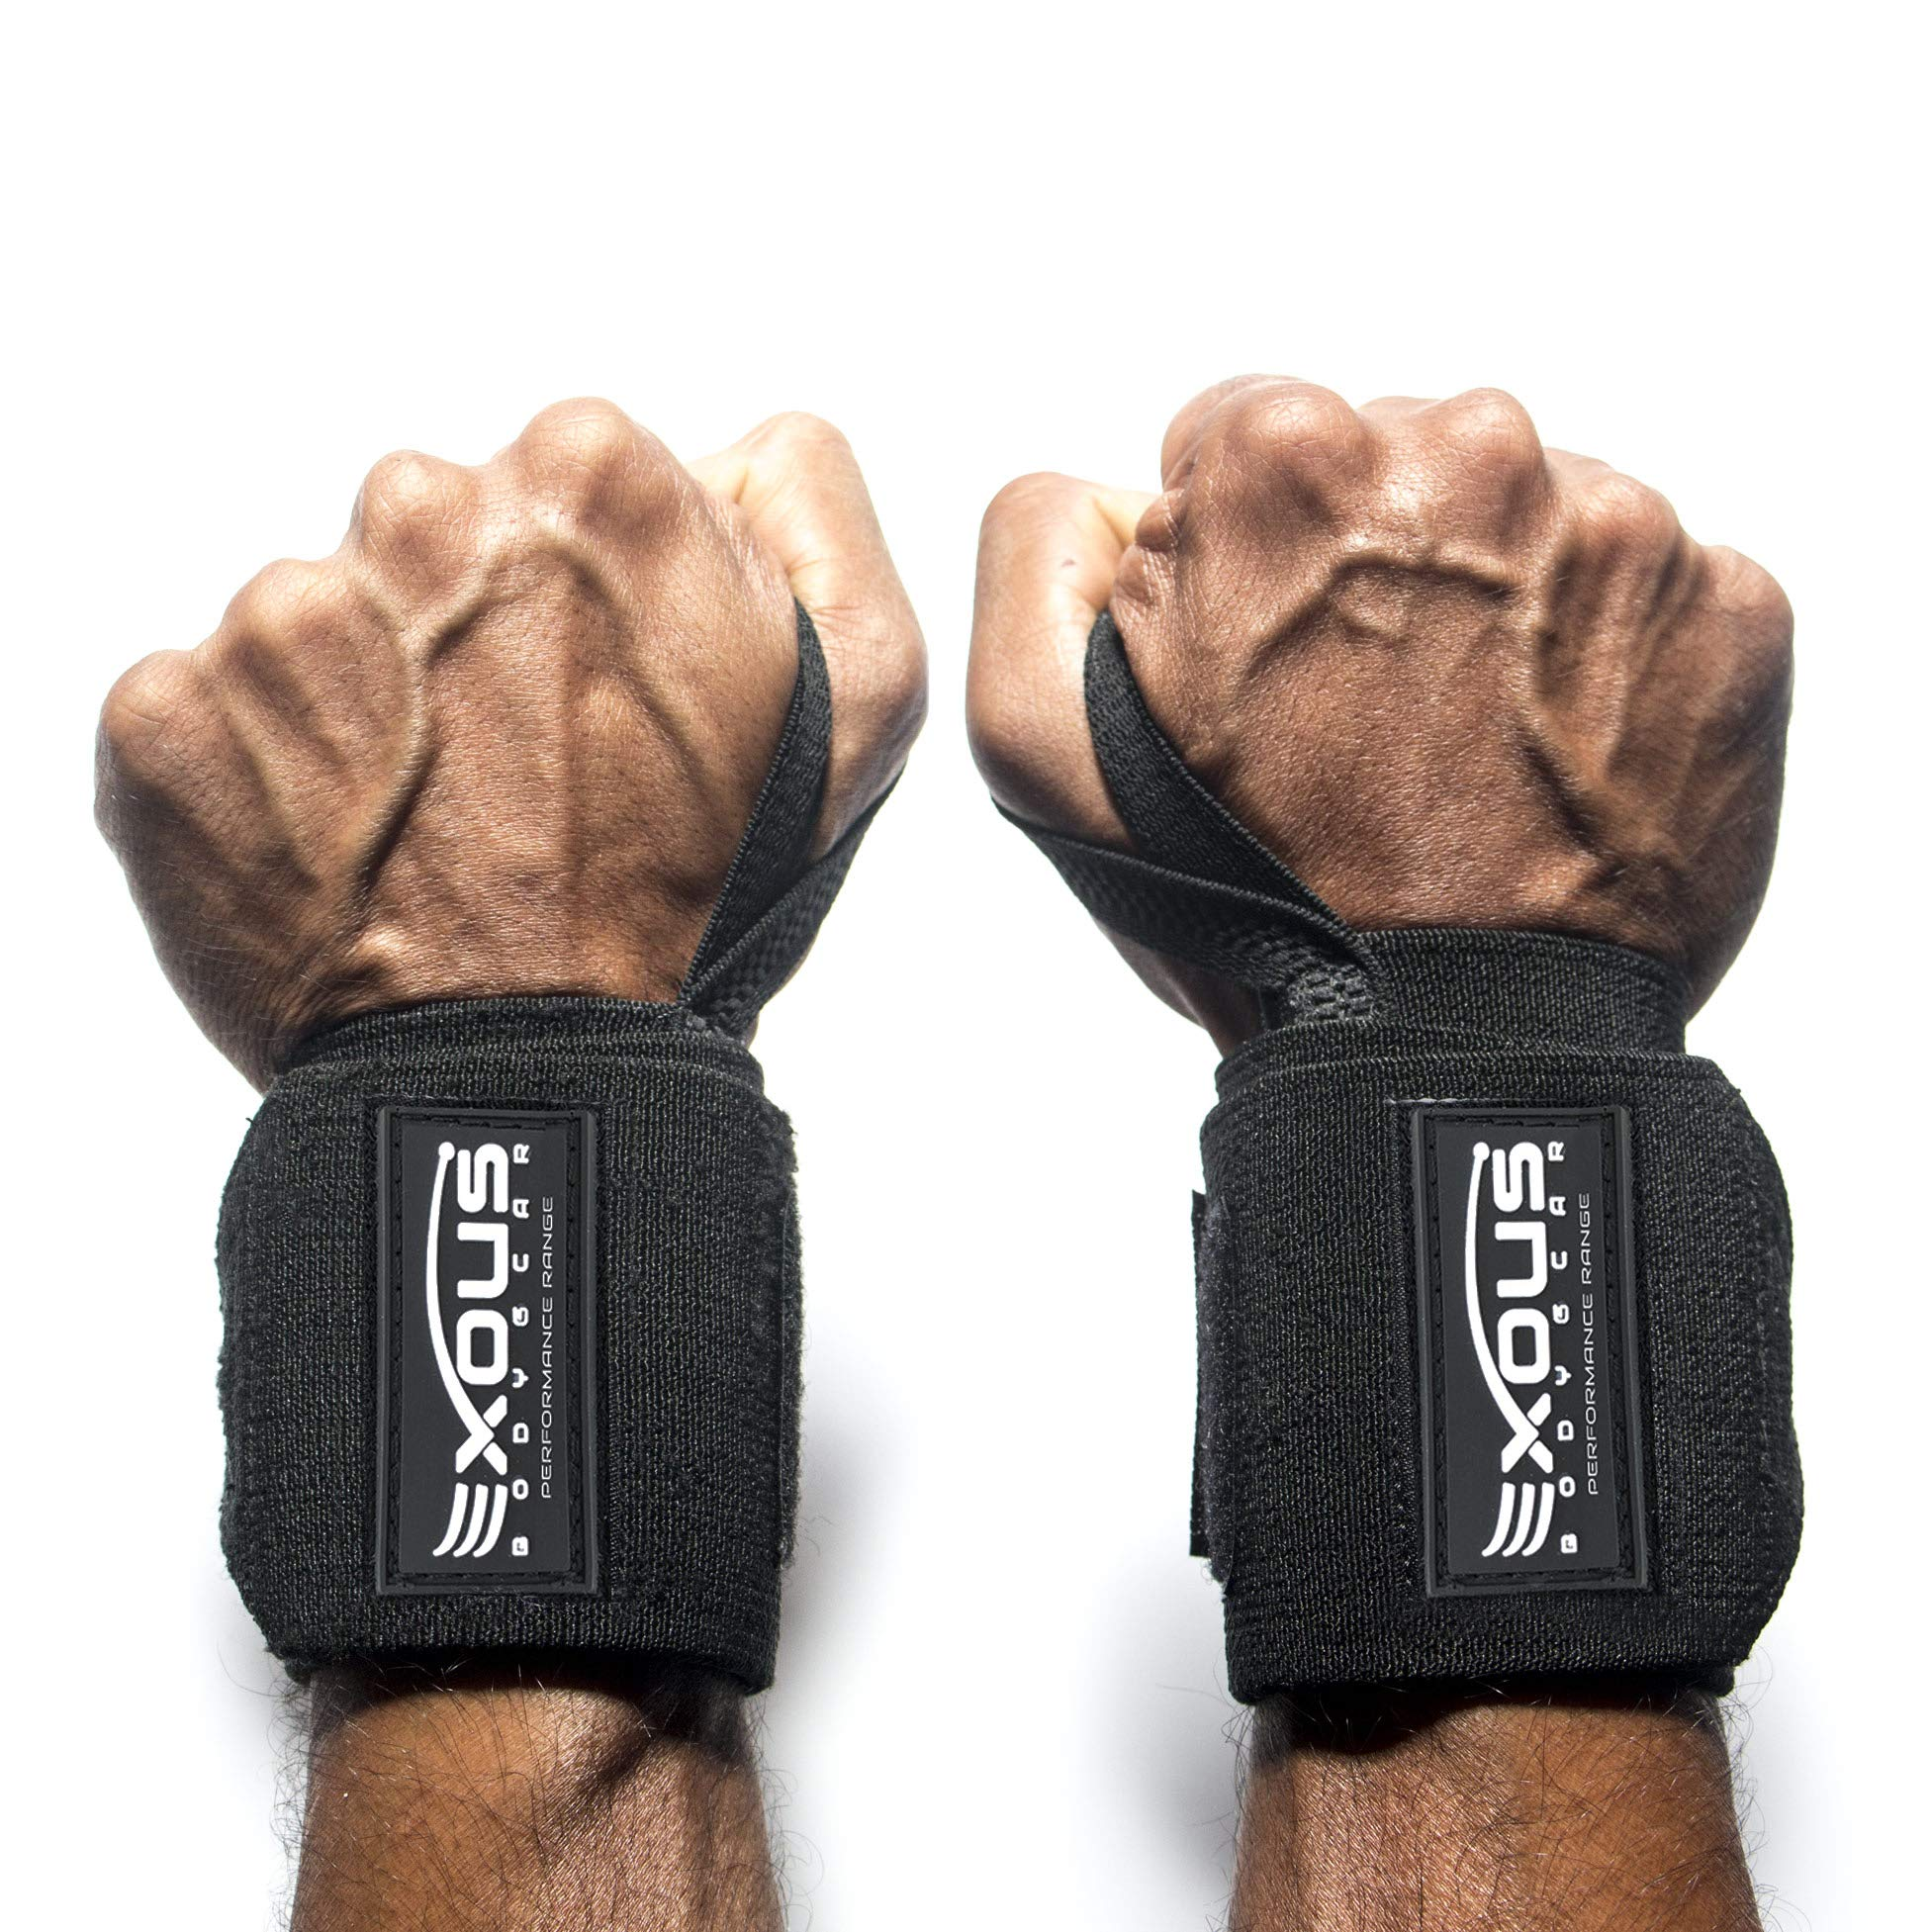 Wrist Wraps Weightlifting Supports - Professional Super Stiff Heavy Duty with Thumb Loop - for Powerlifting - Strength Training Crossfit - Gym Lifting Men & Women Black (12'' REG Duty Flexible)